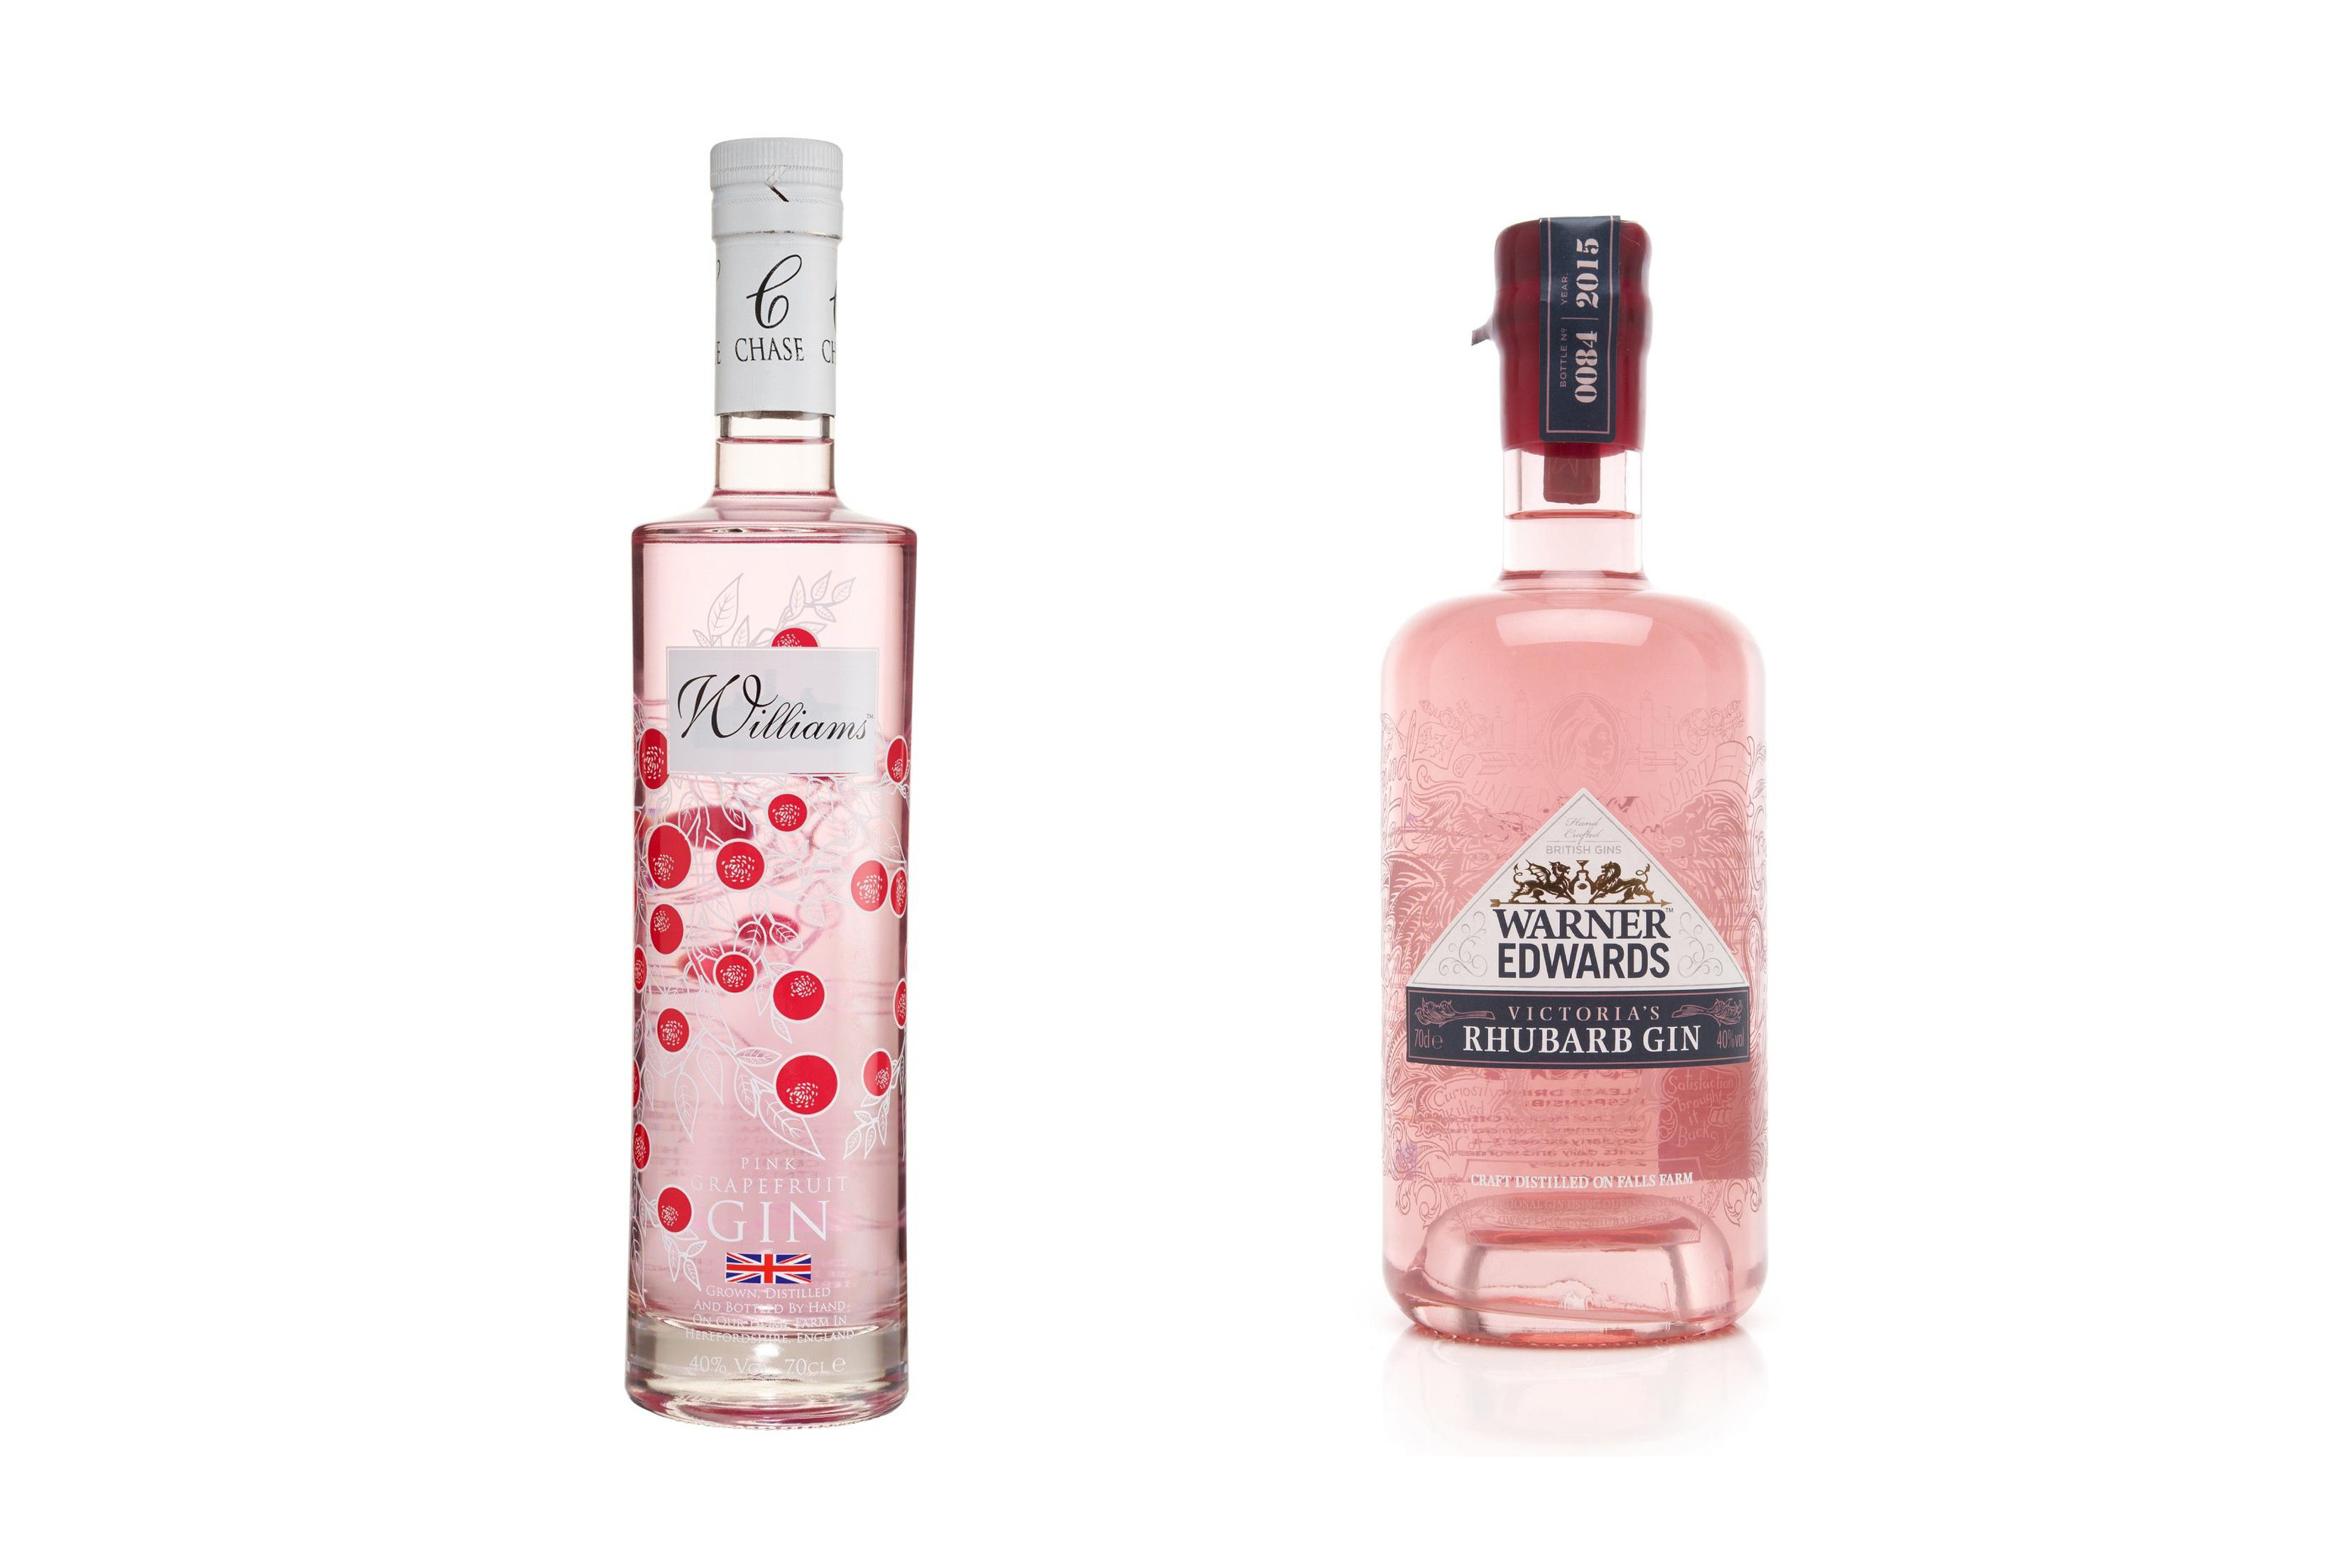 William Chase and Warner Edwards pink gins